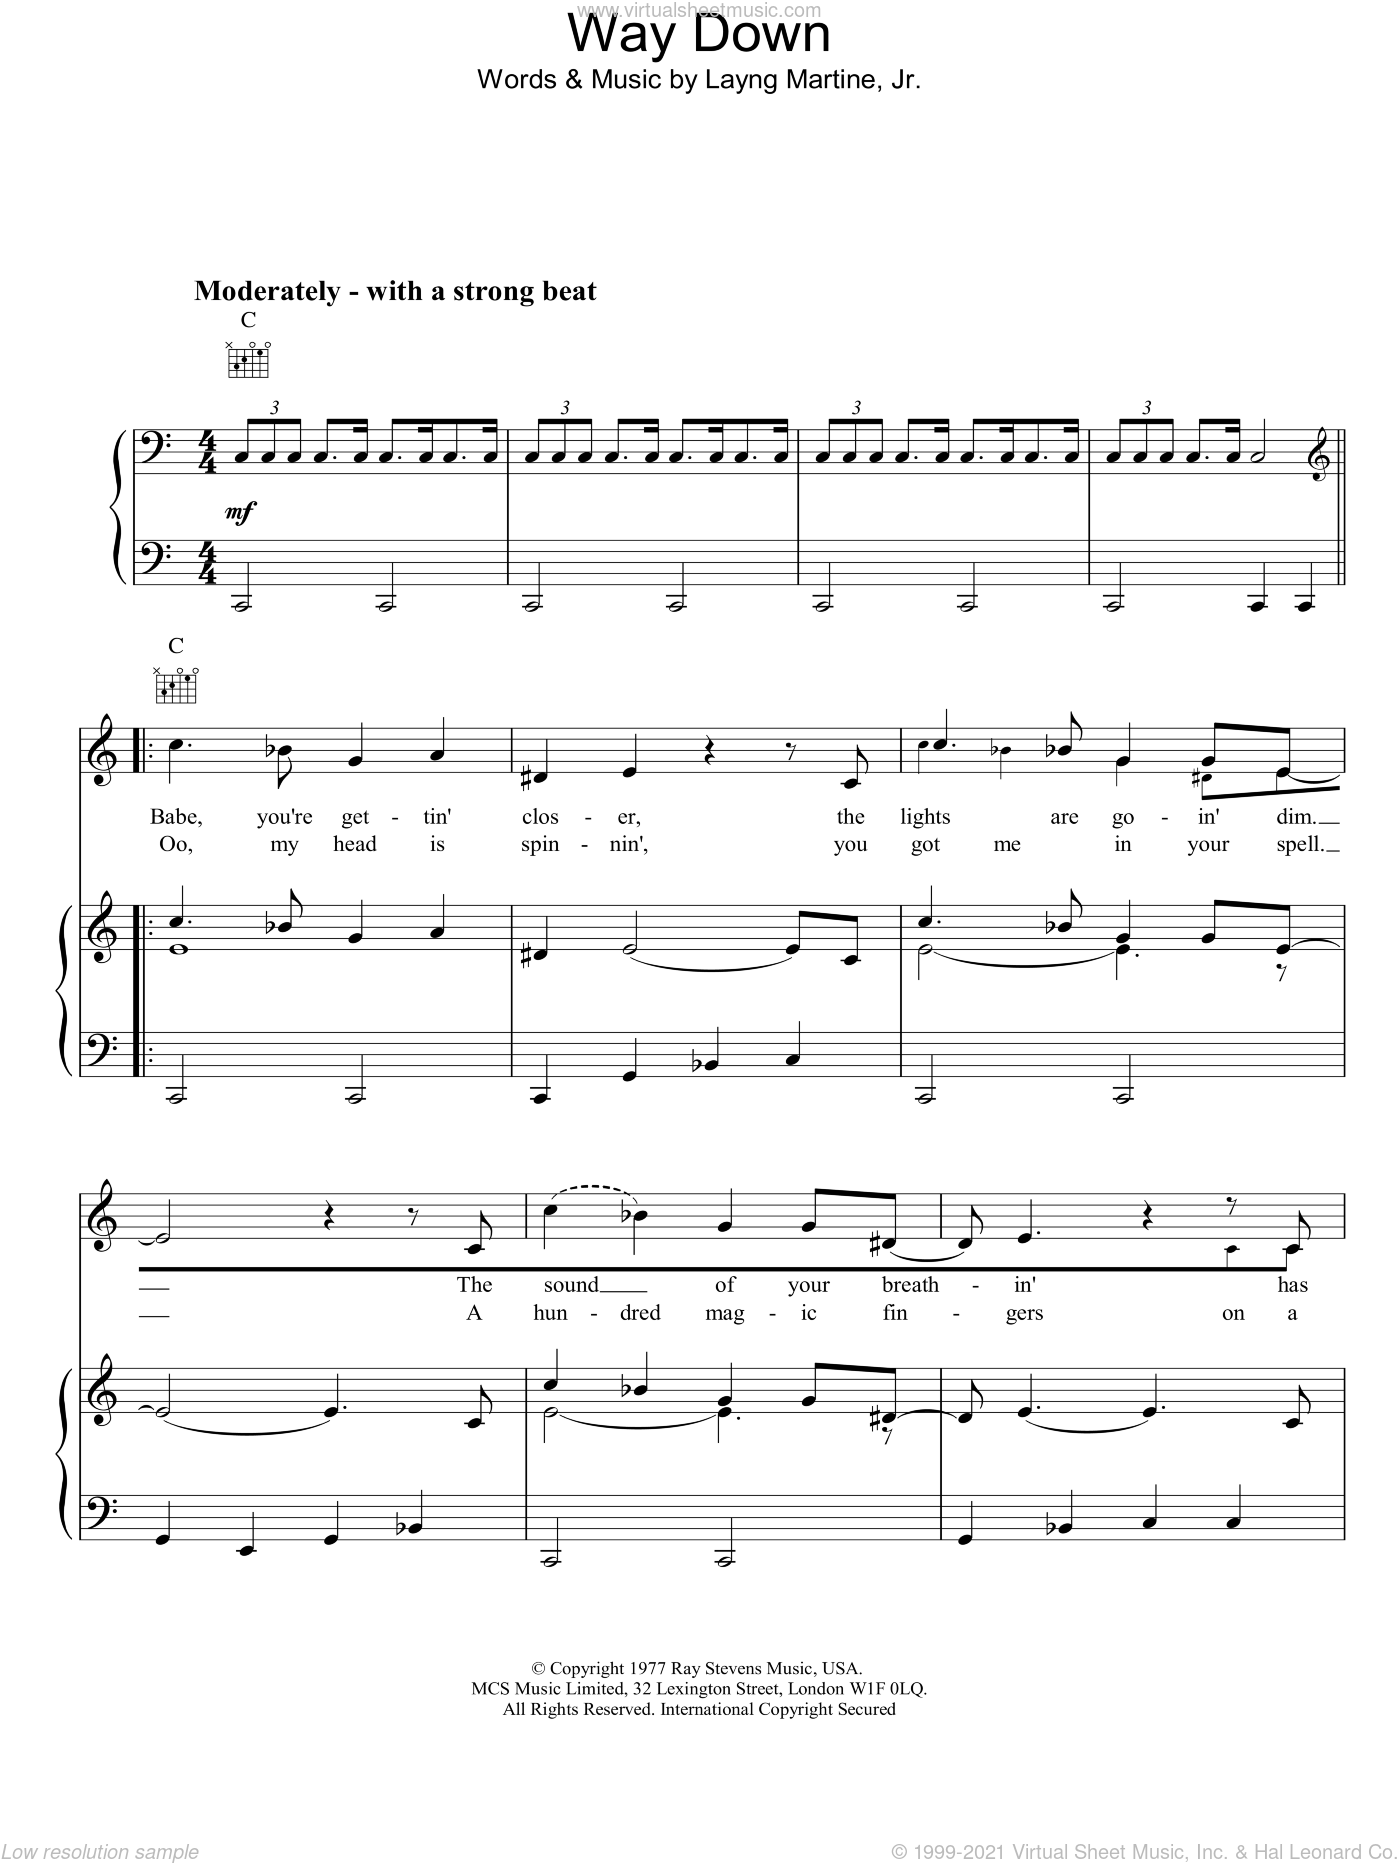 Way Down sheet music for voice, piano or guitar by Elvis Presley, intermediate skill level